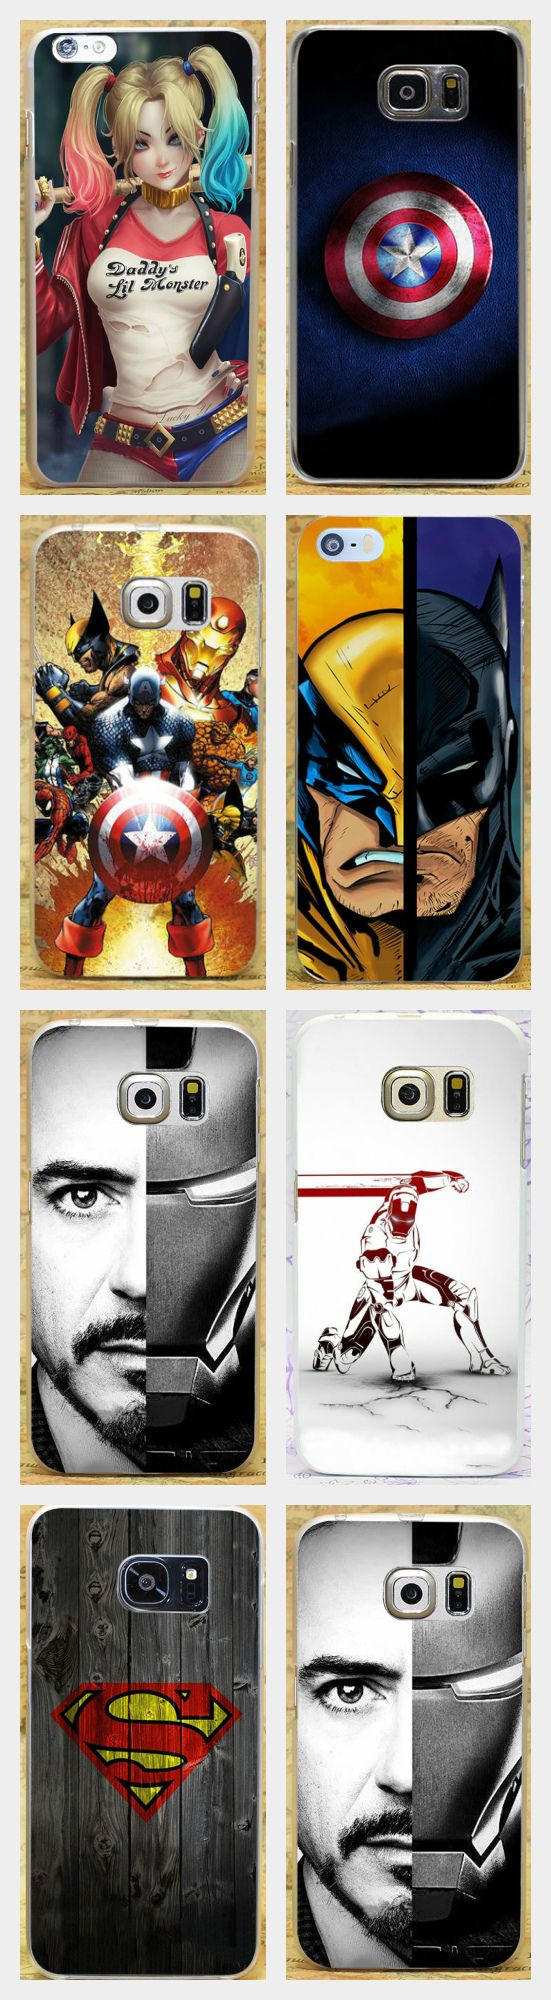 Pics photos batman logo evolution design for samsung galaxy case - Captain America Batman Superman Iron Man Marvel Hero Case Cover For Iphone 4 5 6 7 Plus For Samsung 2015 2016 2017 2015 2016 Mini Edge